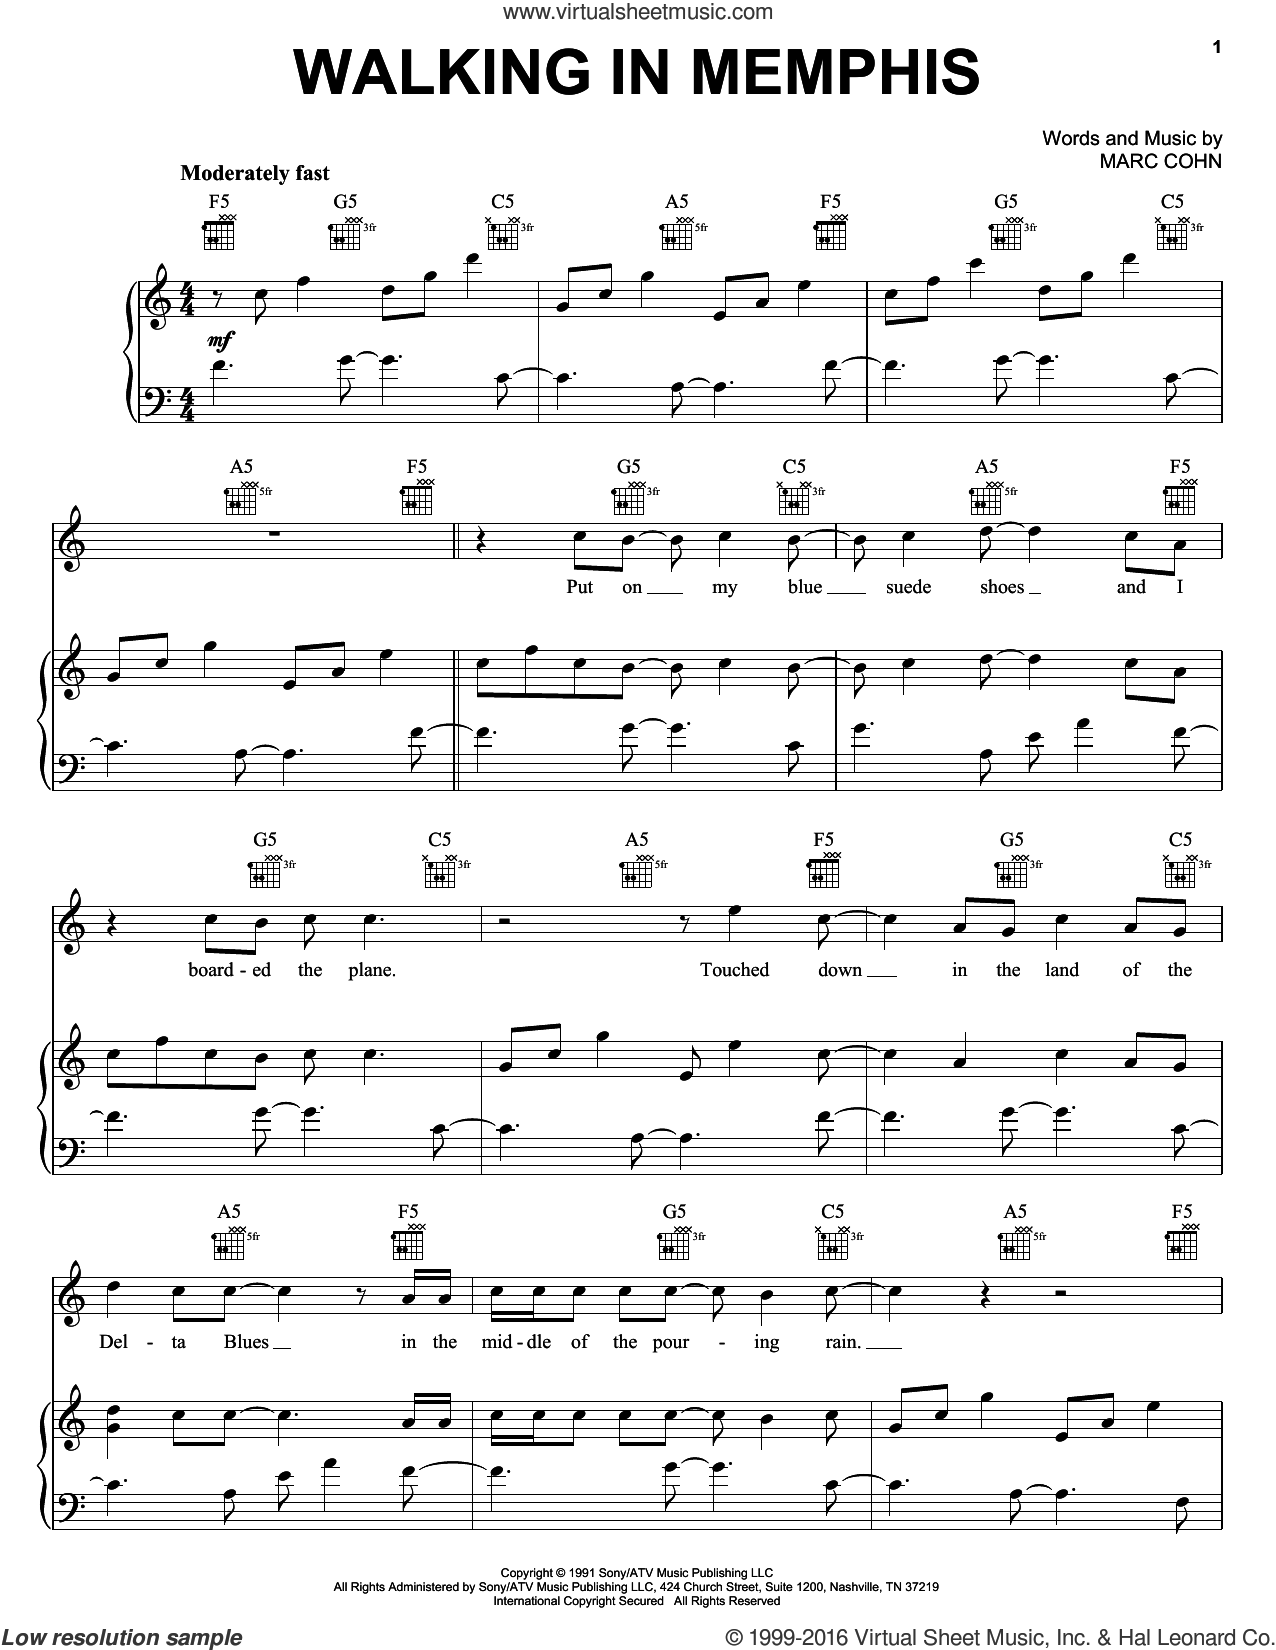 Walking In Memphis sheet music for voice, piano or guitar by Marc Cohn. Score Image Preview.